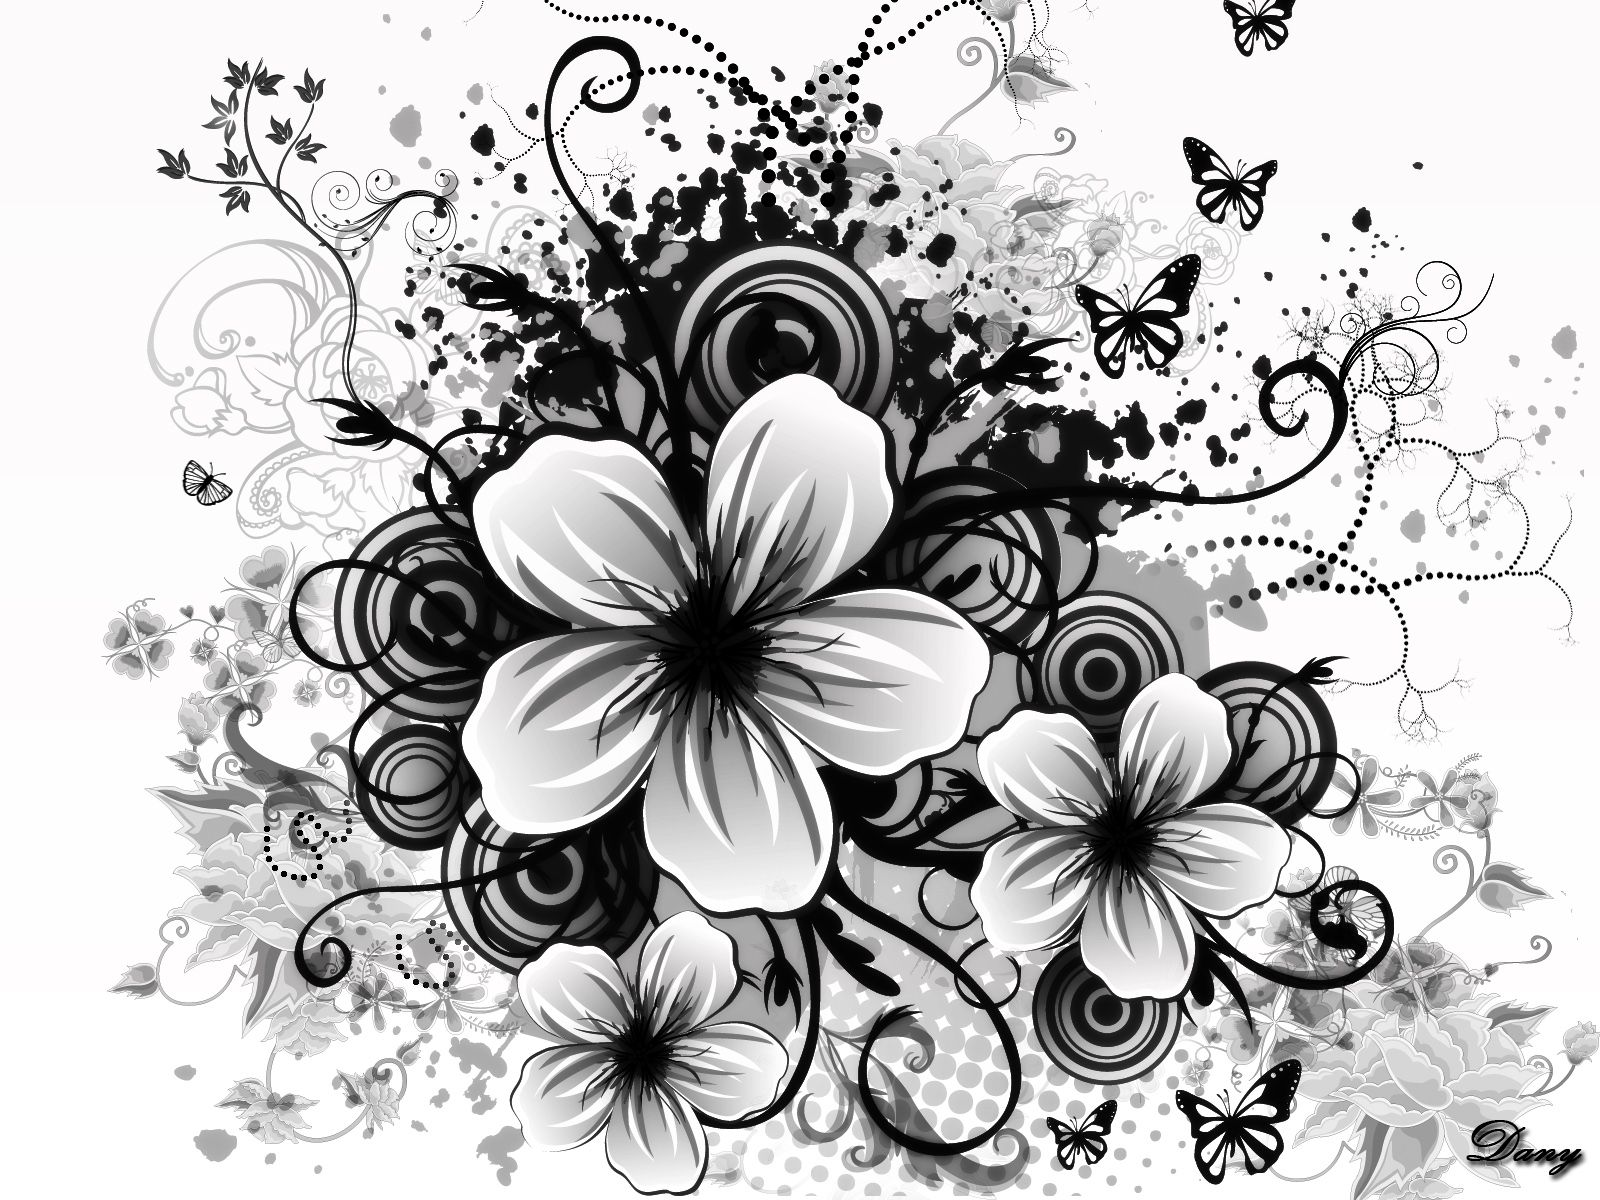 Flower+Drawings+in+Black+and+White | ... -12-15 03:36:13 23091 ...